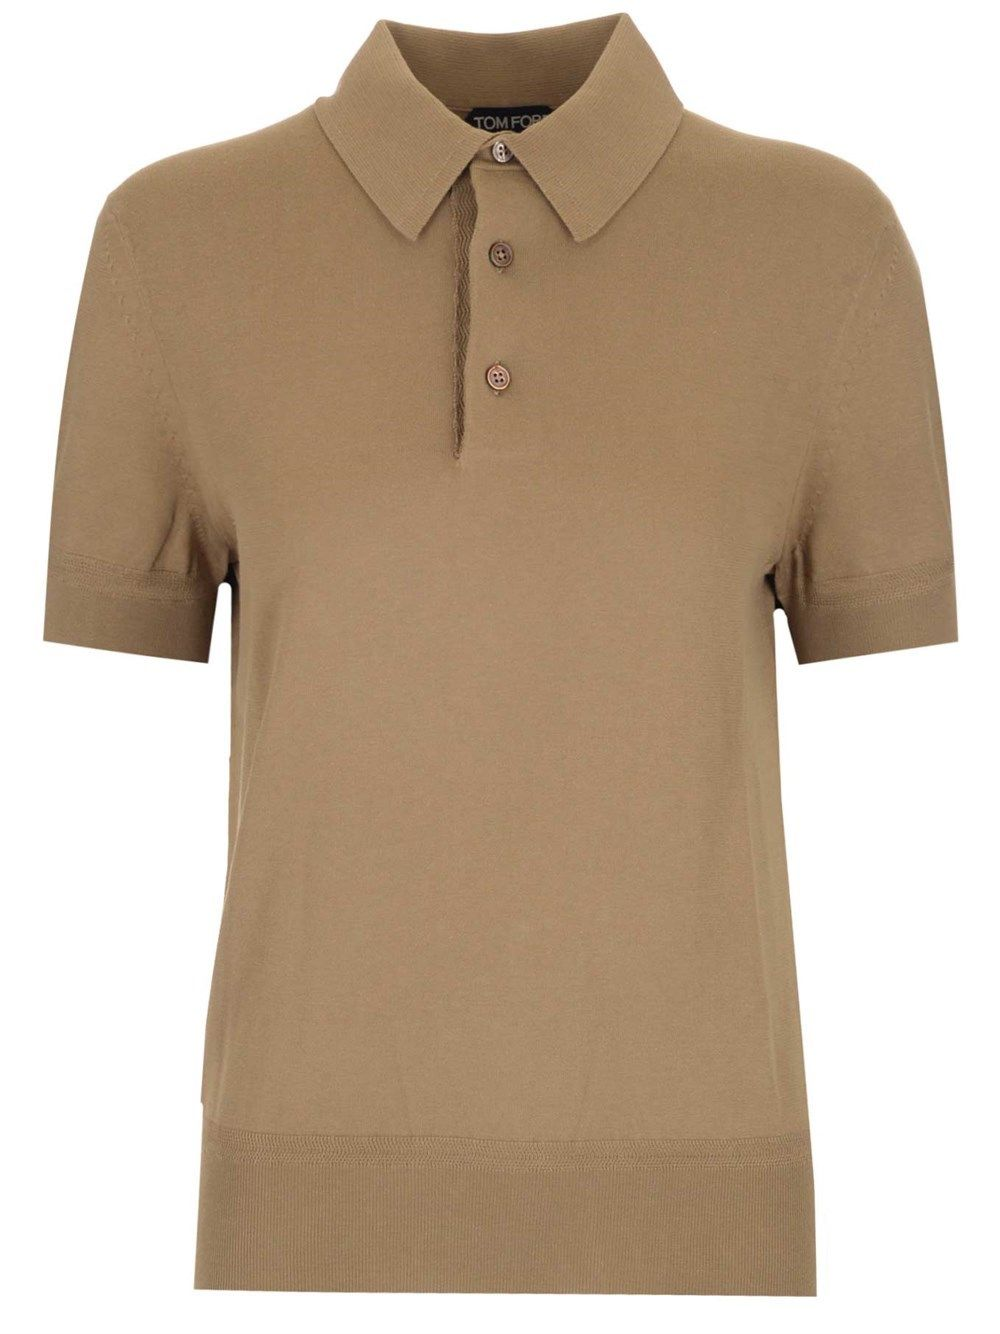 Tom Ford TOM FORD MEN'S BWC00TFKC33S05 BEIGE OTHER MATERIALS POLO SHIRT